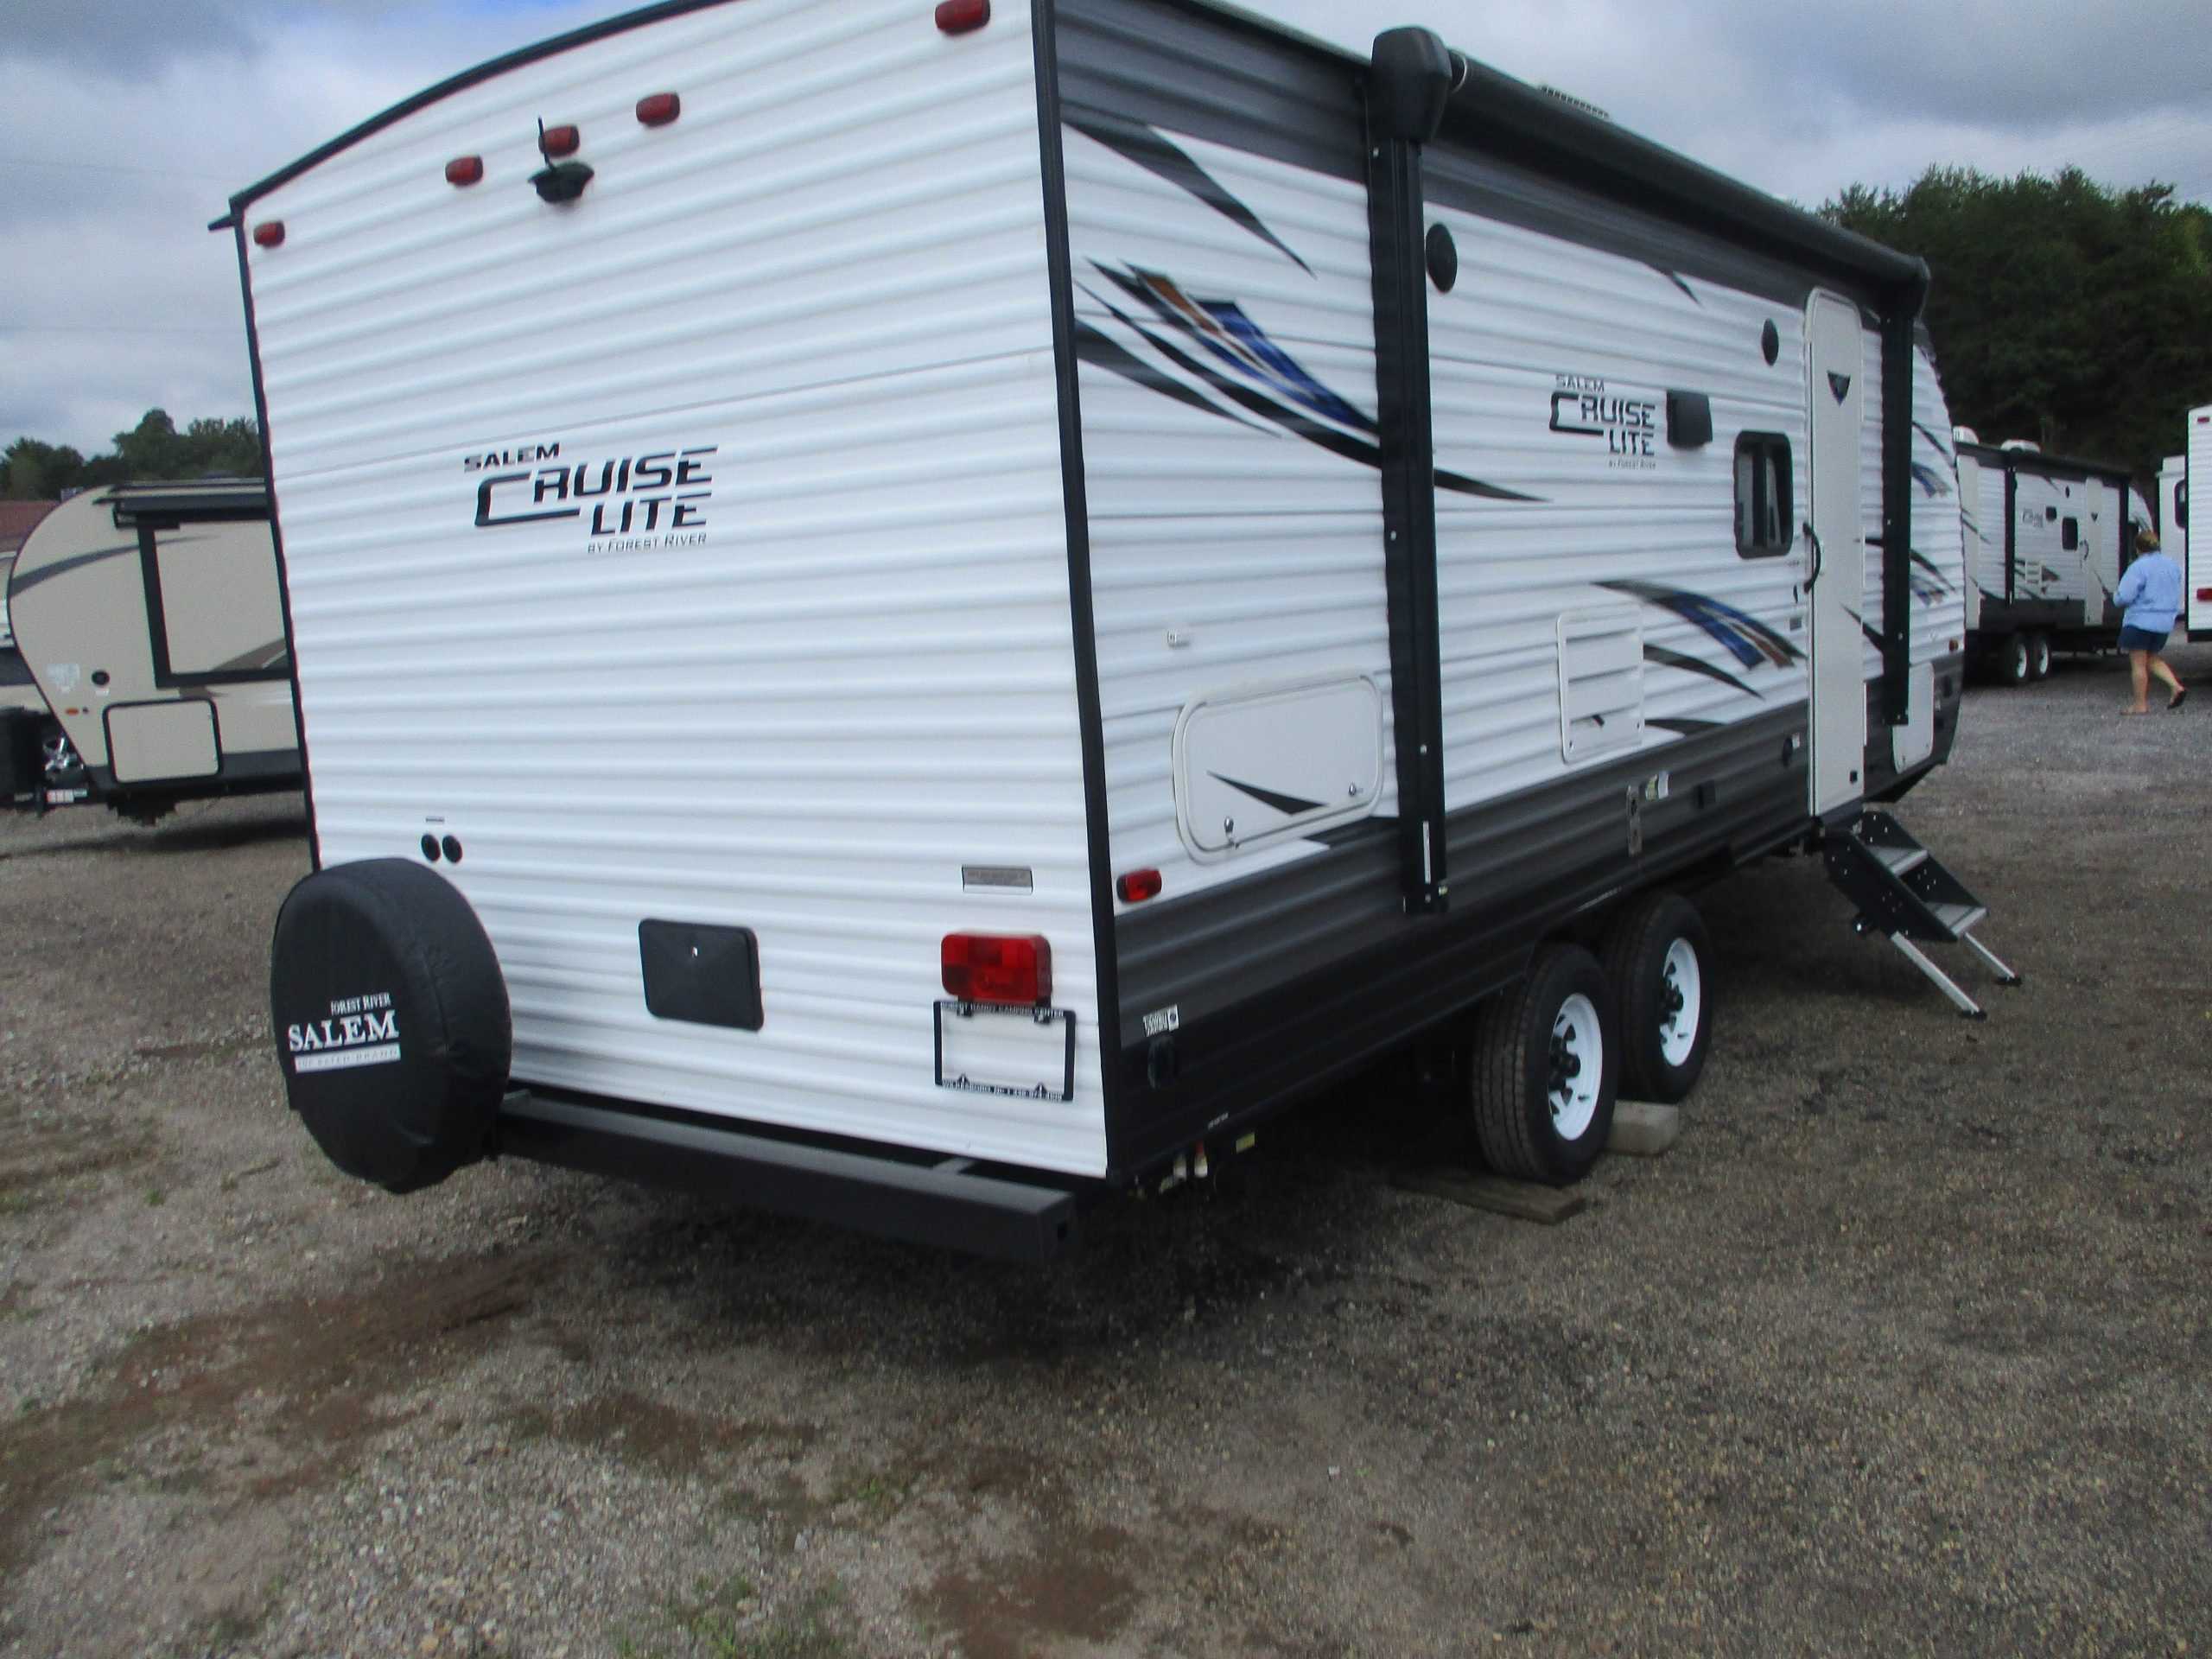 Camper Dealer of Travel Trailer within driving distance of Appalachian State University.